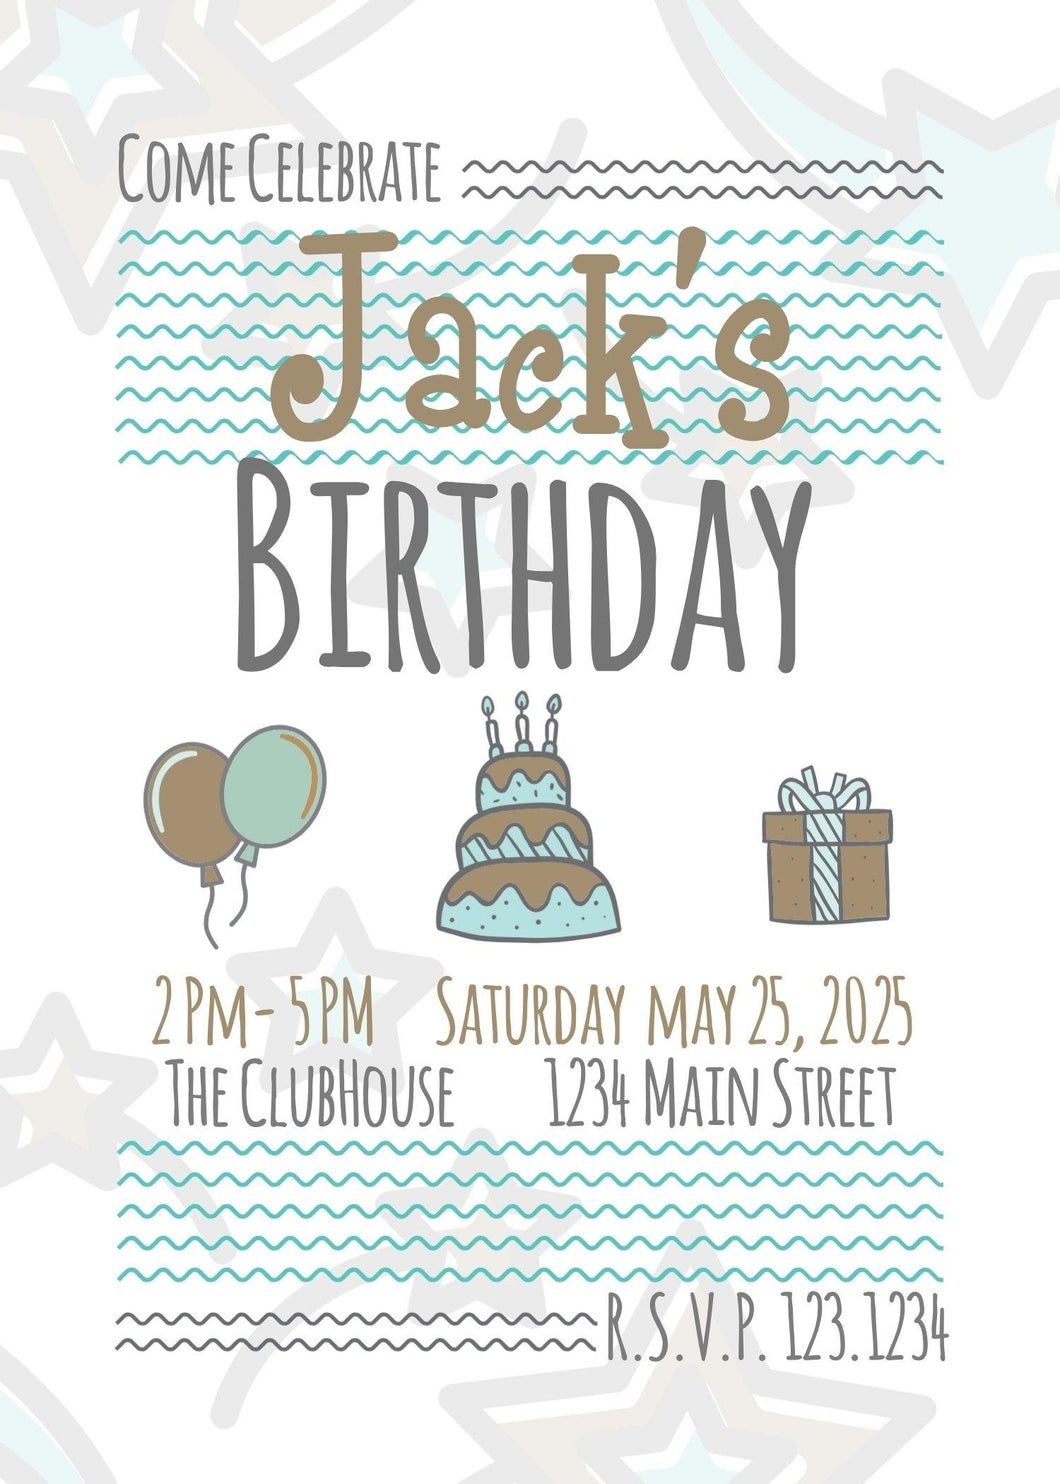 Starry Birthday Party Invitation - Custom Design Party Invites and Personalized Announcements